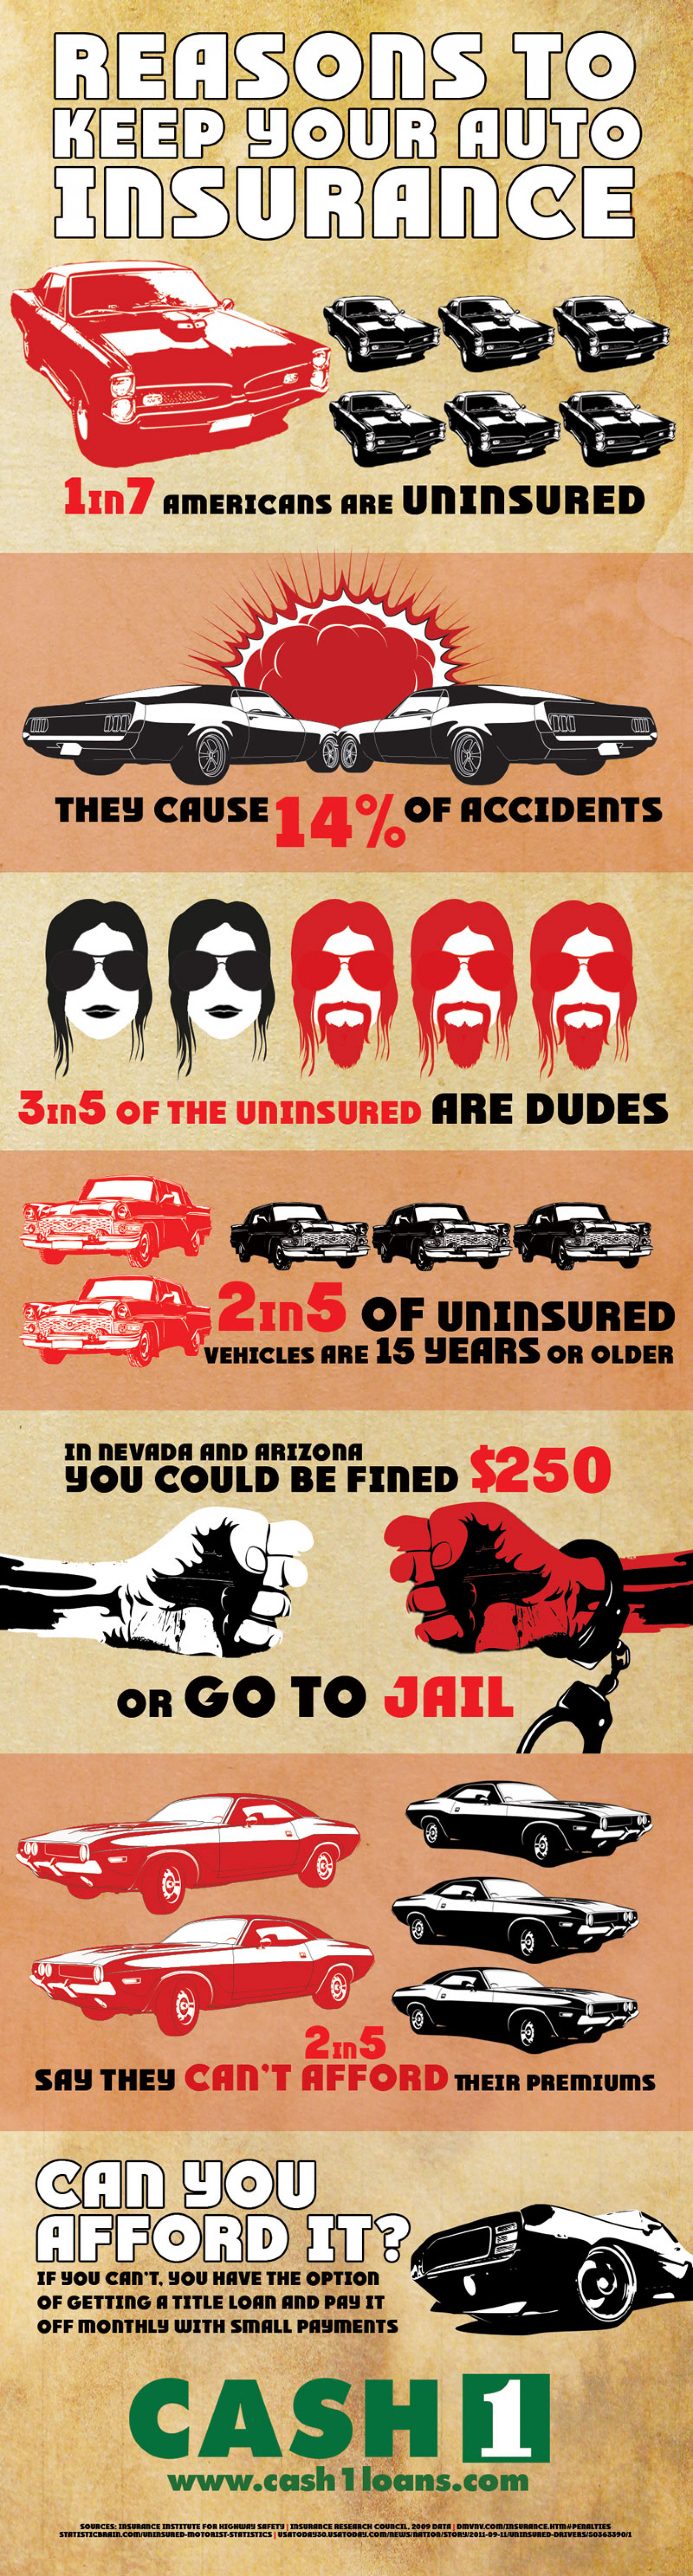 Reasons to Keep Your Auto Insurance [INFOGRAPHIC] Infographic